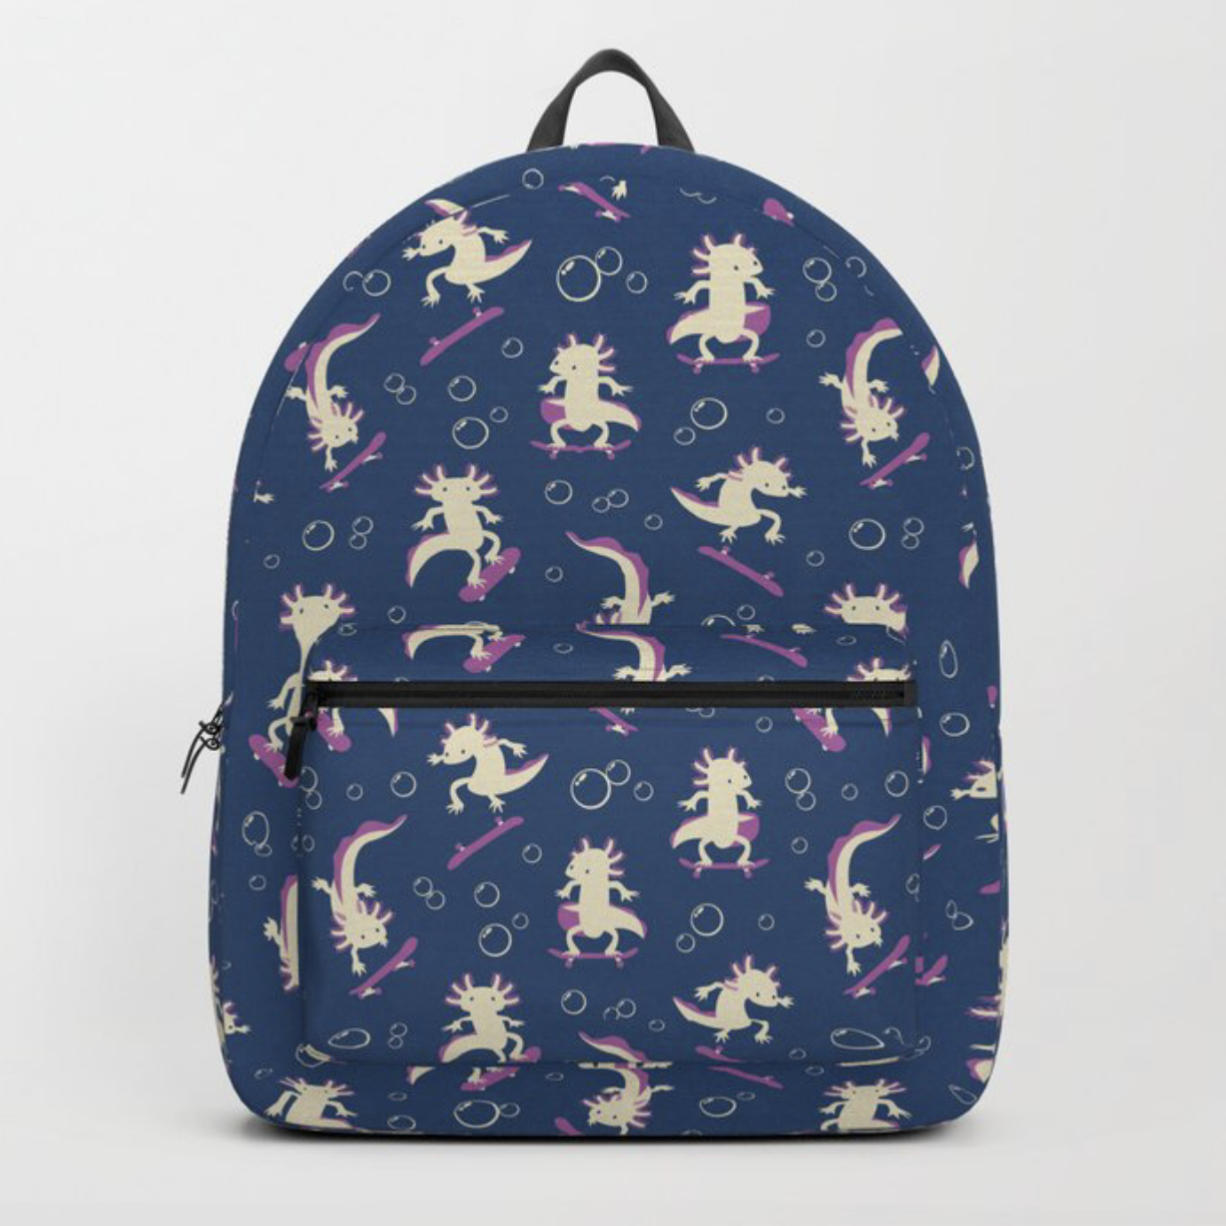 To the Maxalotl backpack from Society6